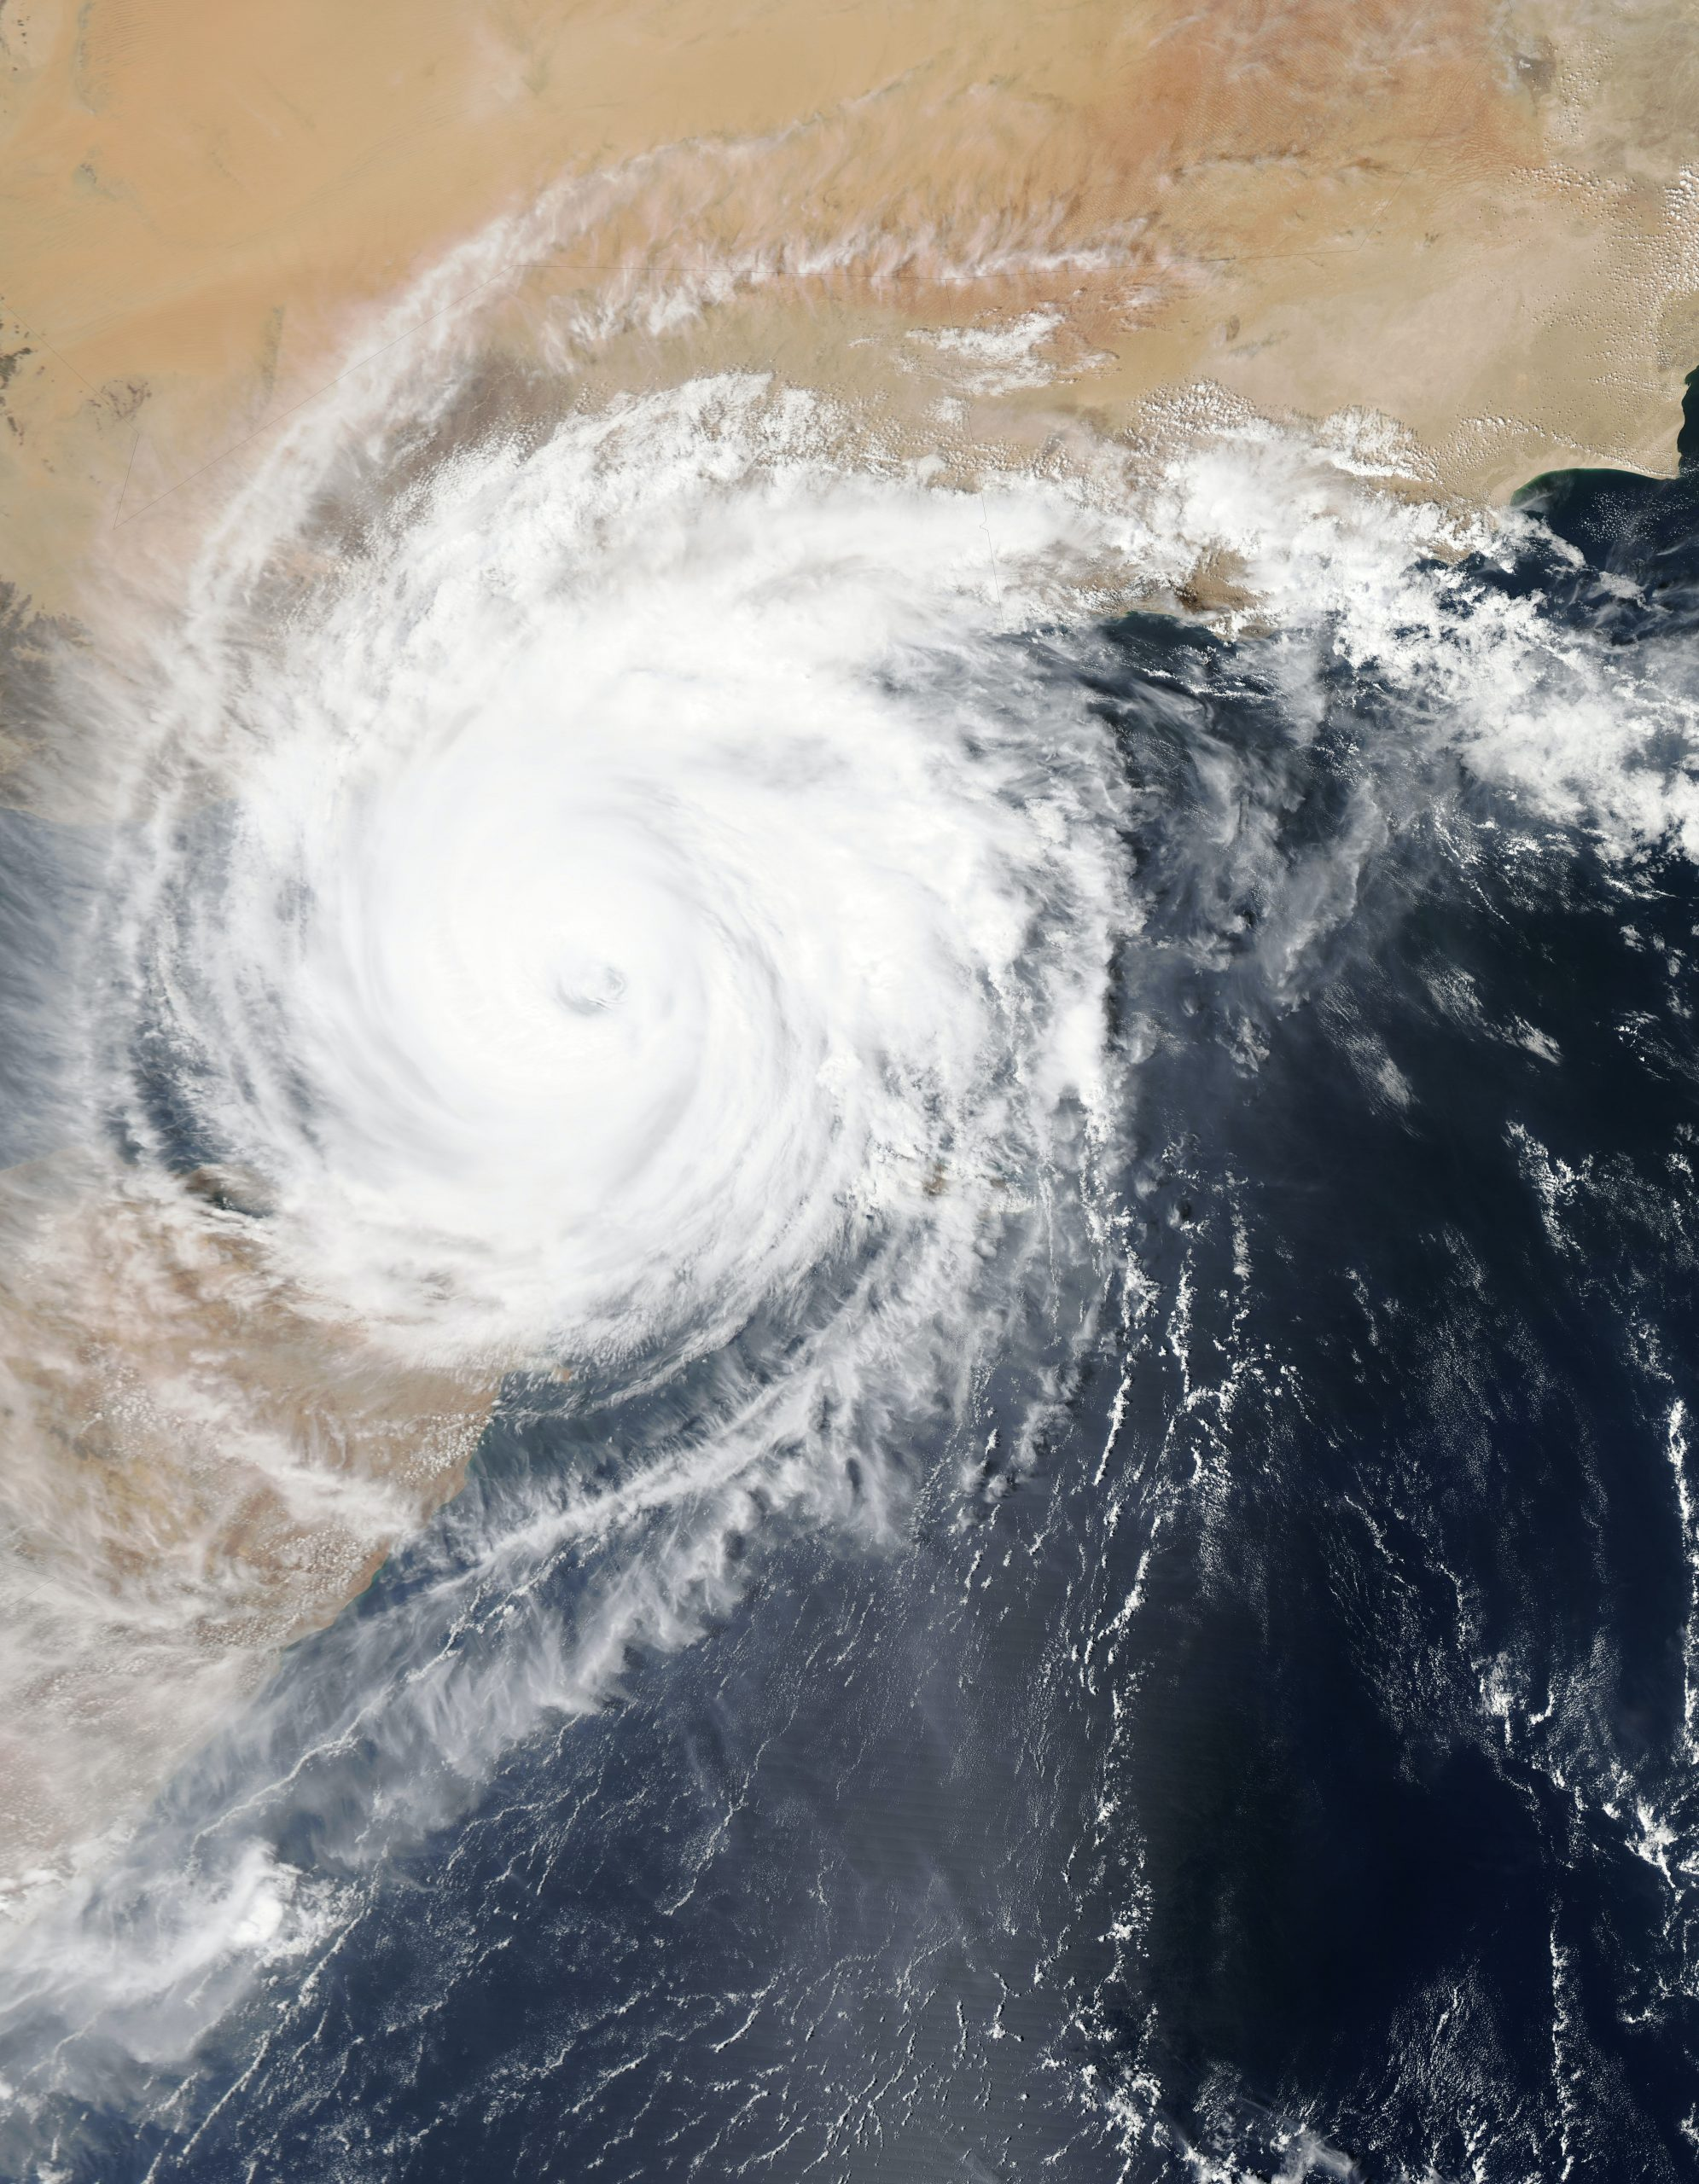 Facing Disasters During COVID-19